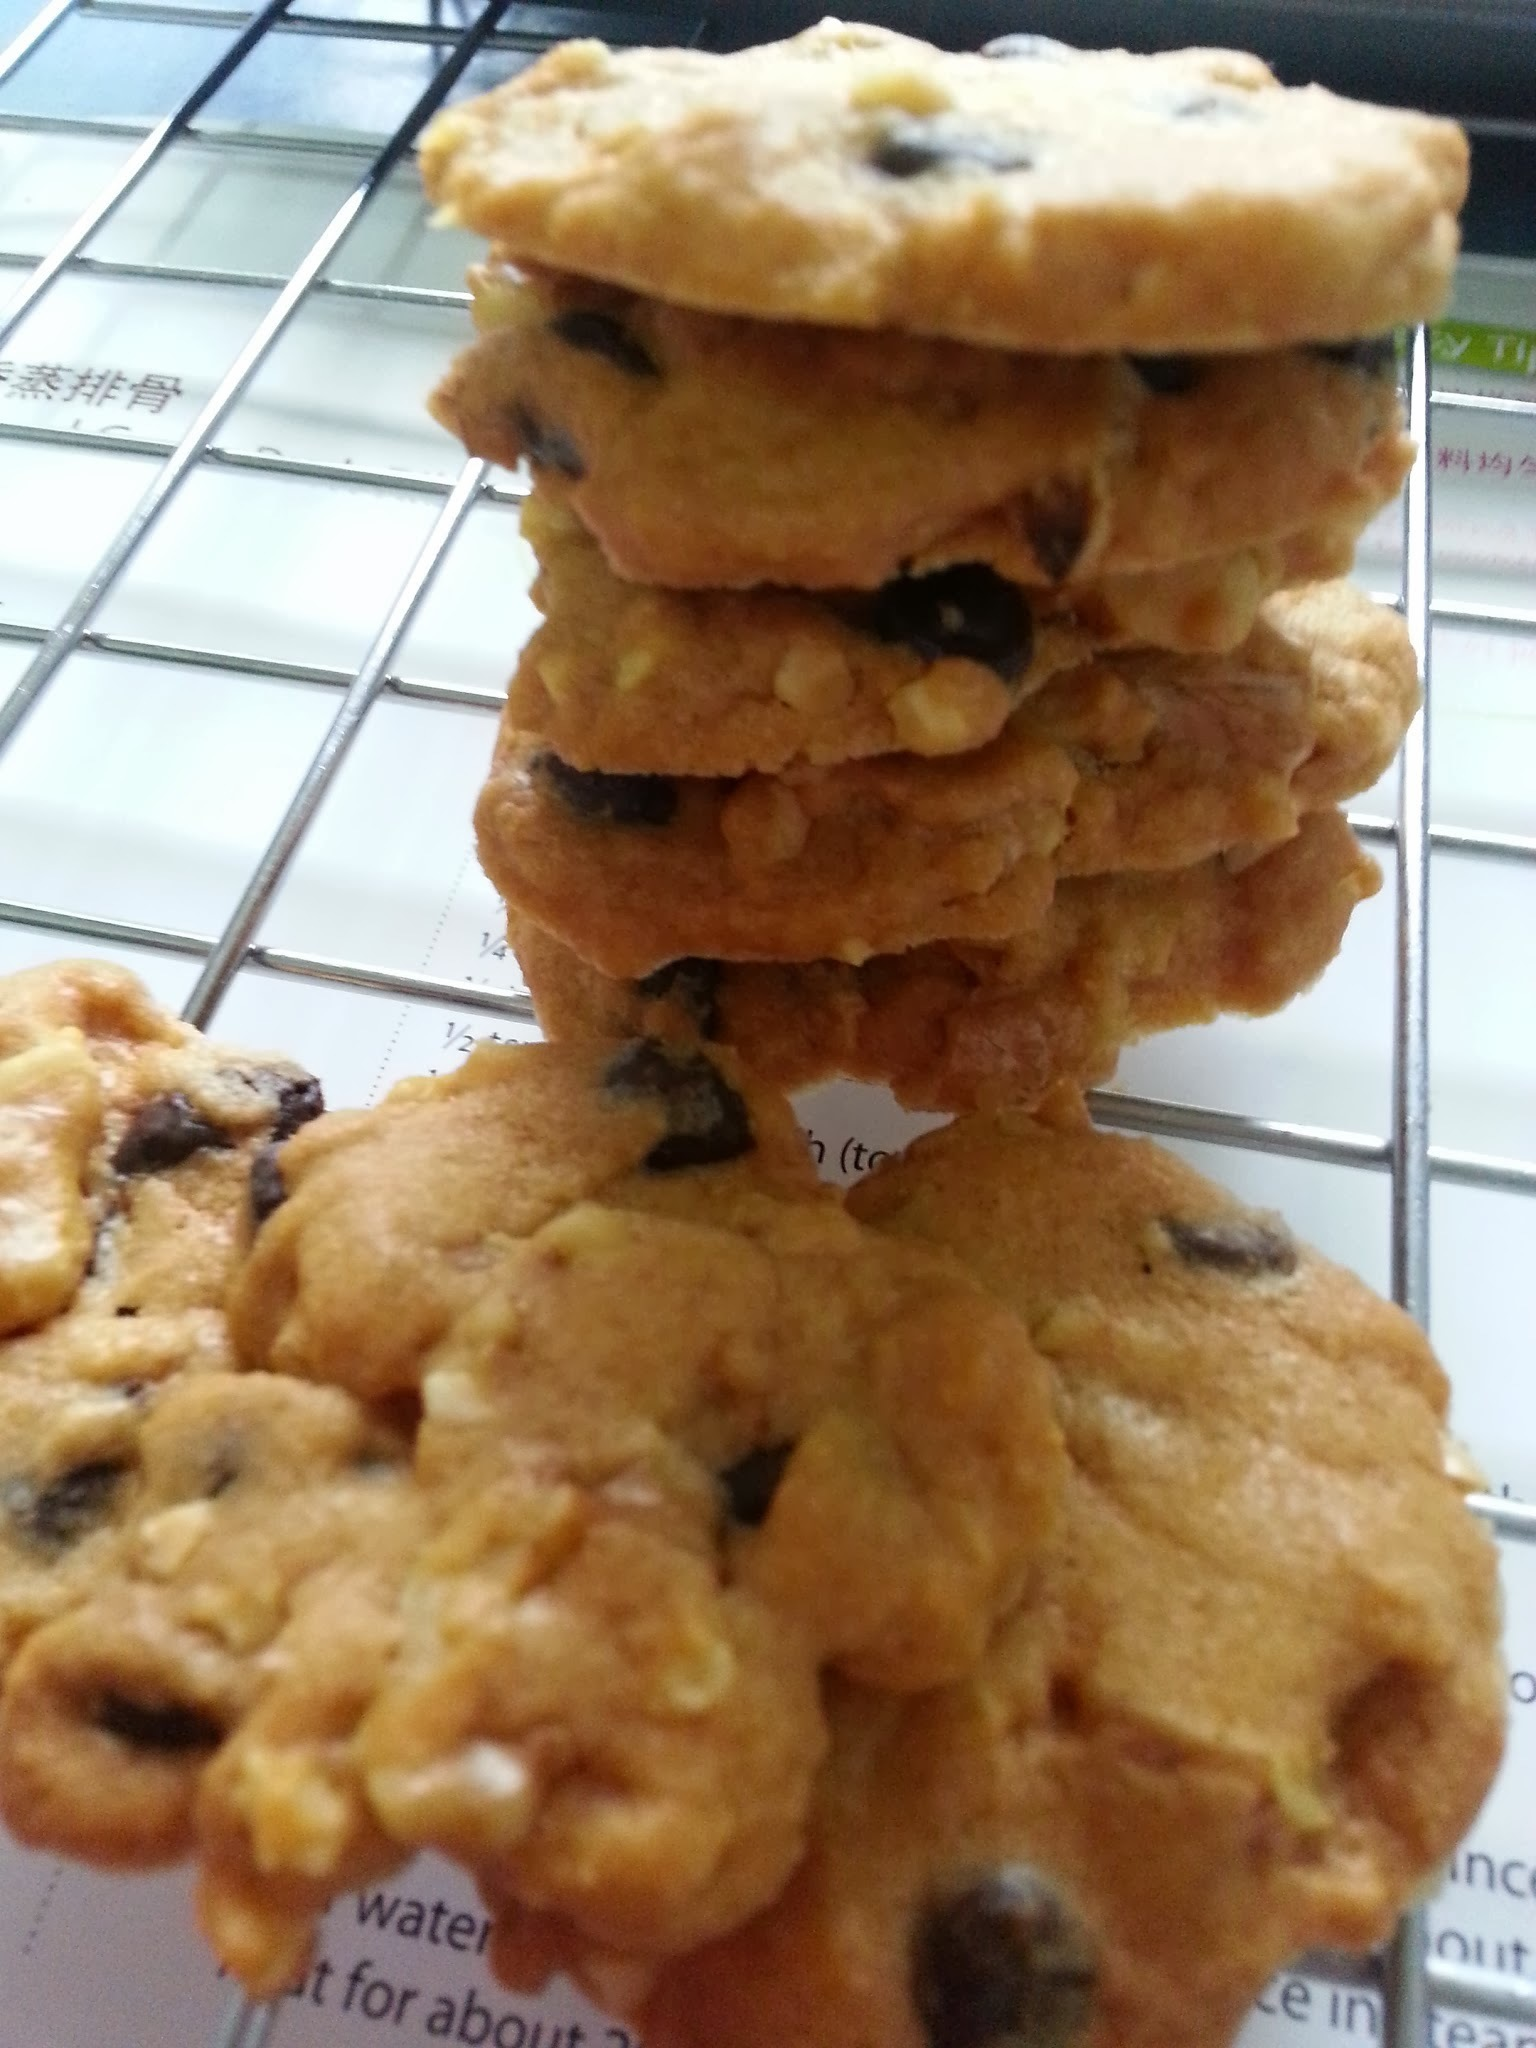 Famous Amos Chocolate Chip Walnut Almond Cookies 巧克力胡桃杏仁饼干